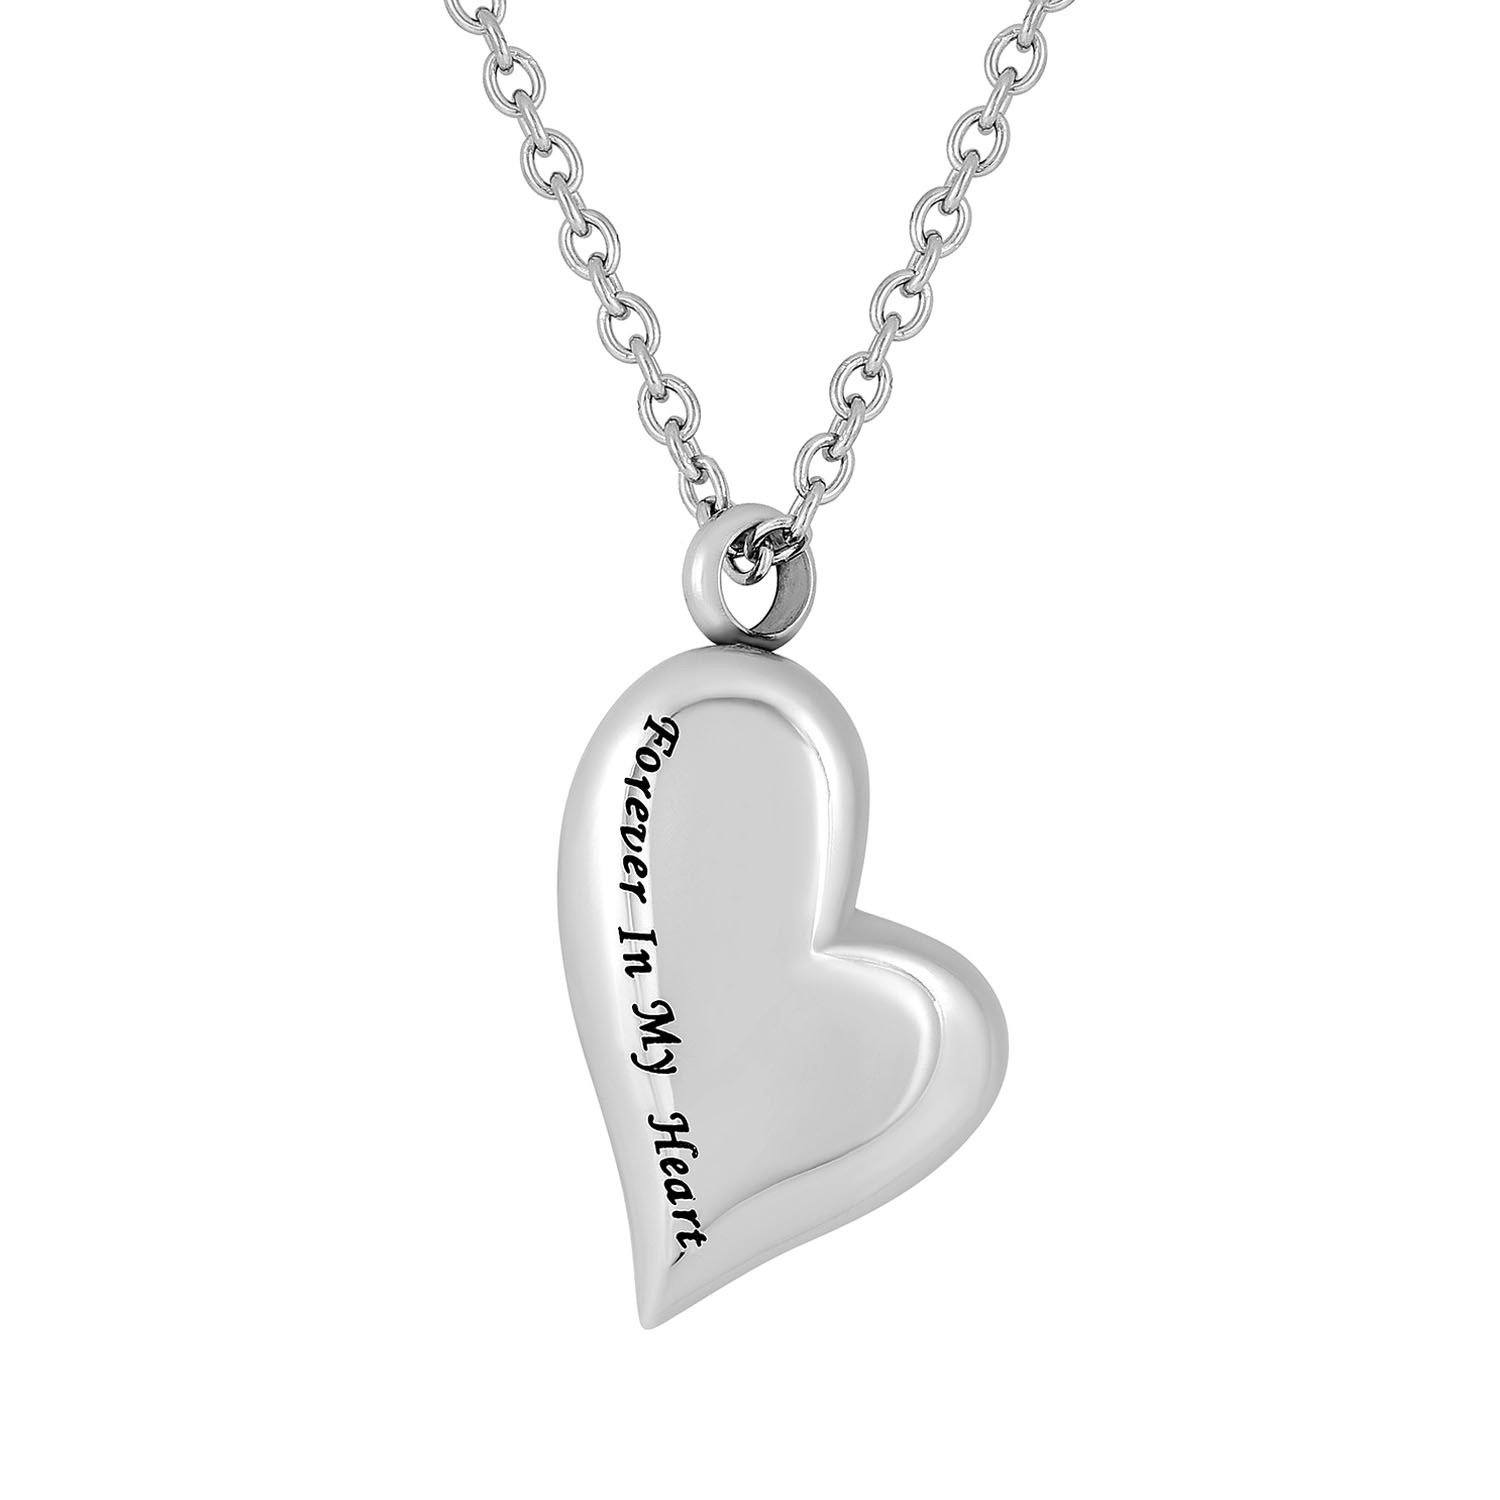 Cremation Jewelry Necklace for Ashes - Forever In My Heart